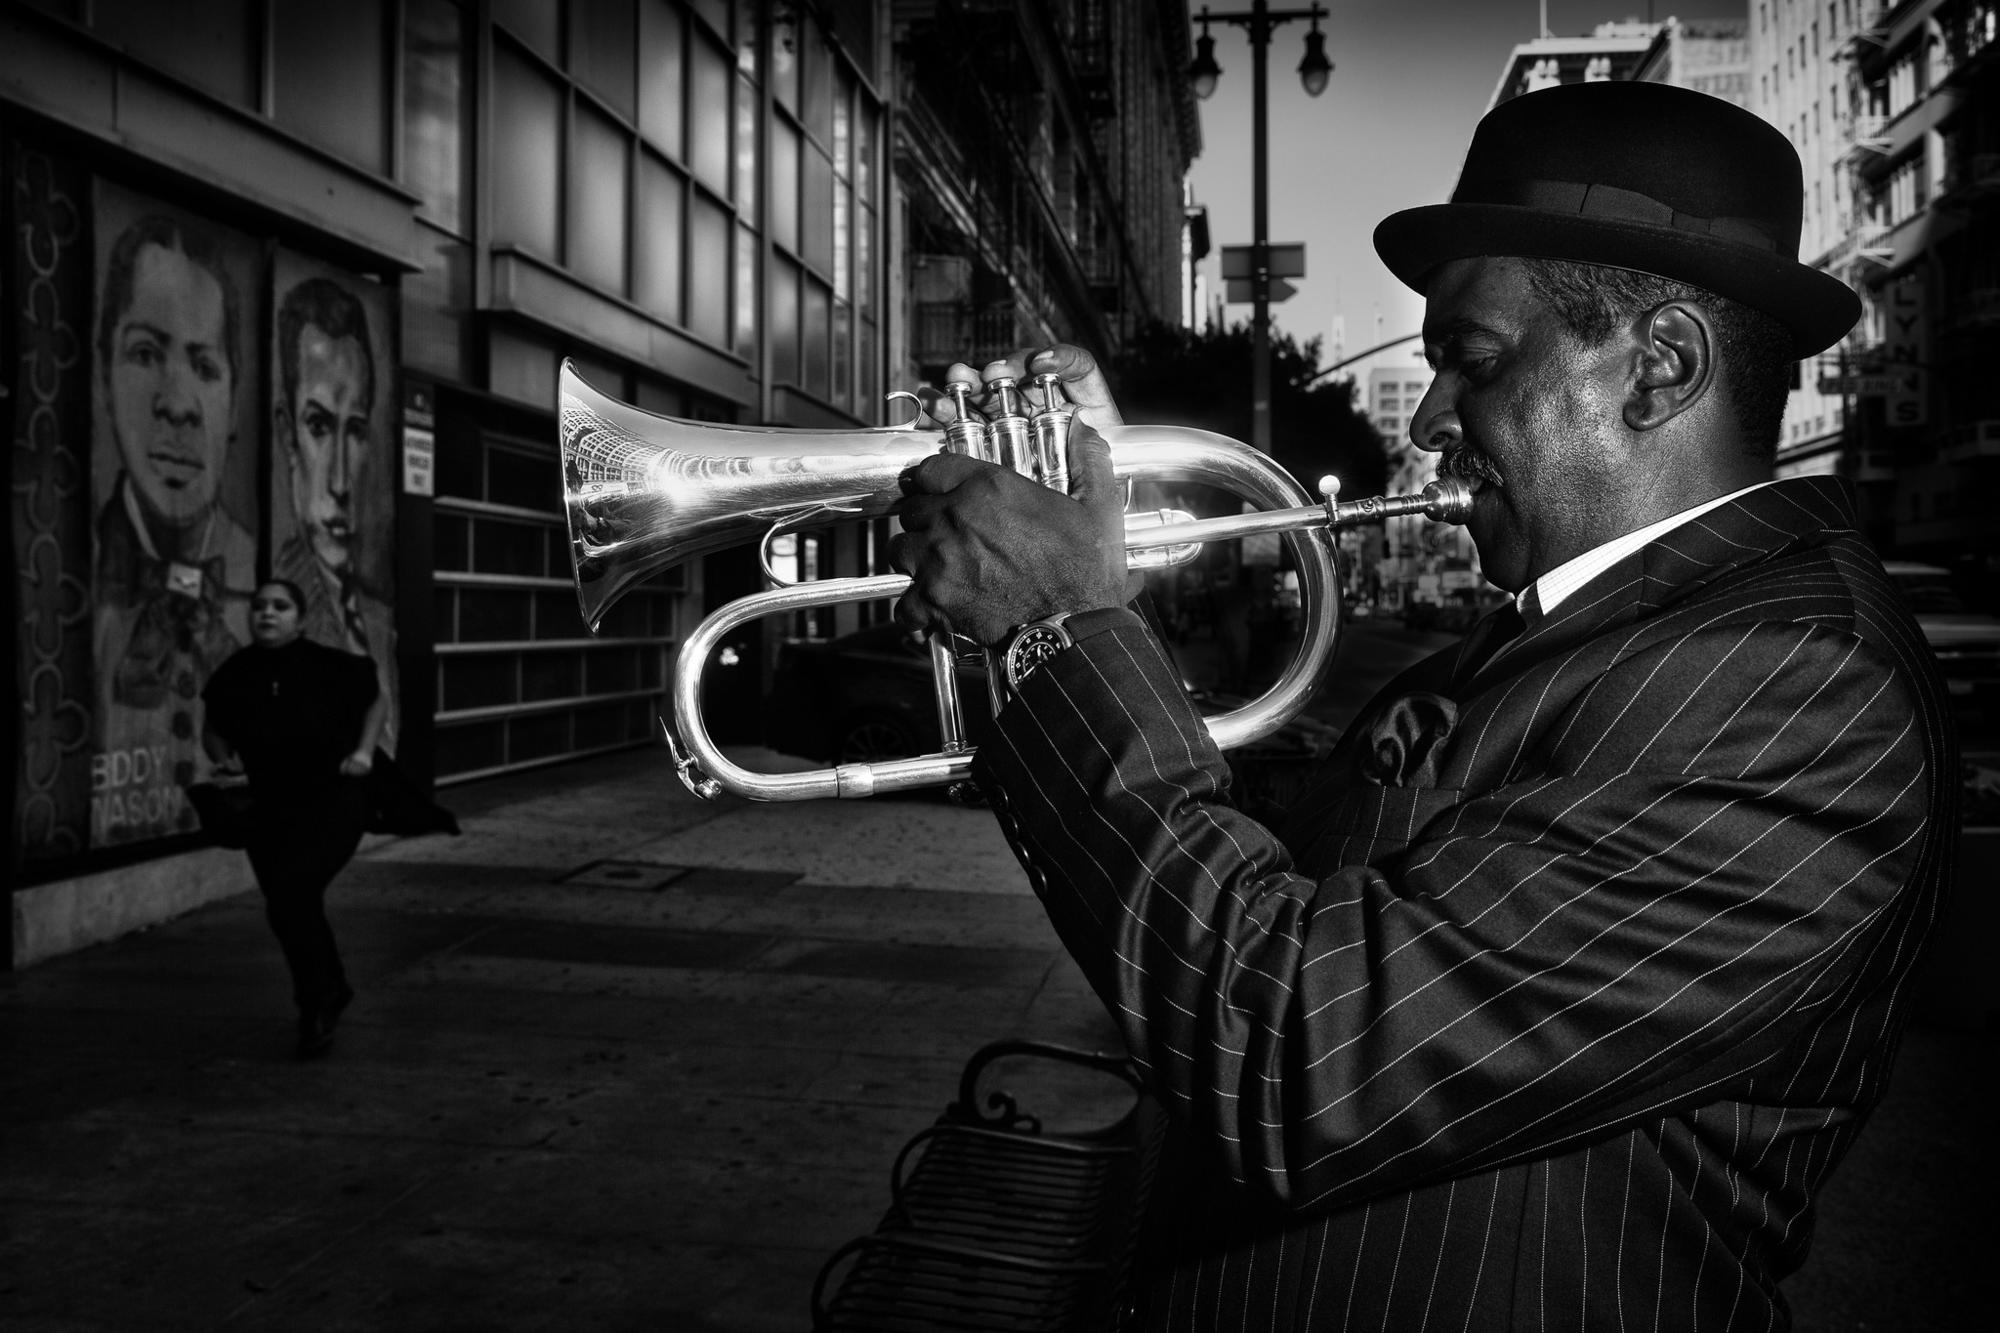 Billy Coates playing jazz near 9th and Broadway, as a woman runs to catch her bus.